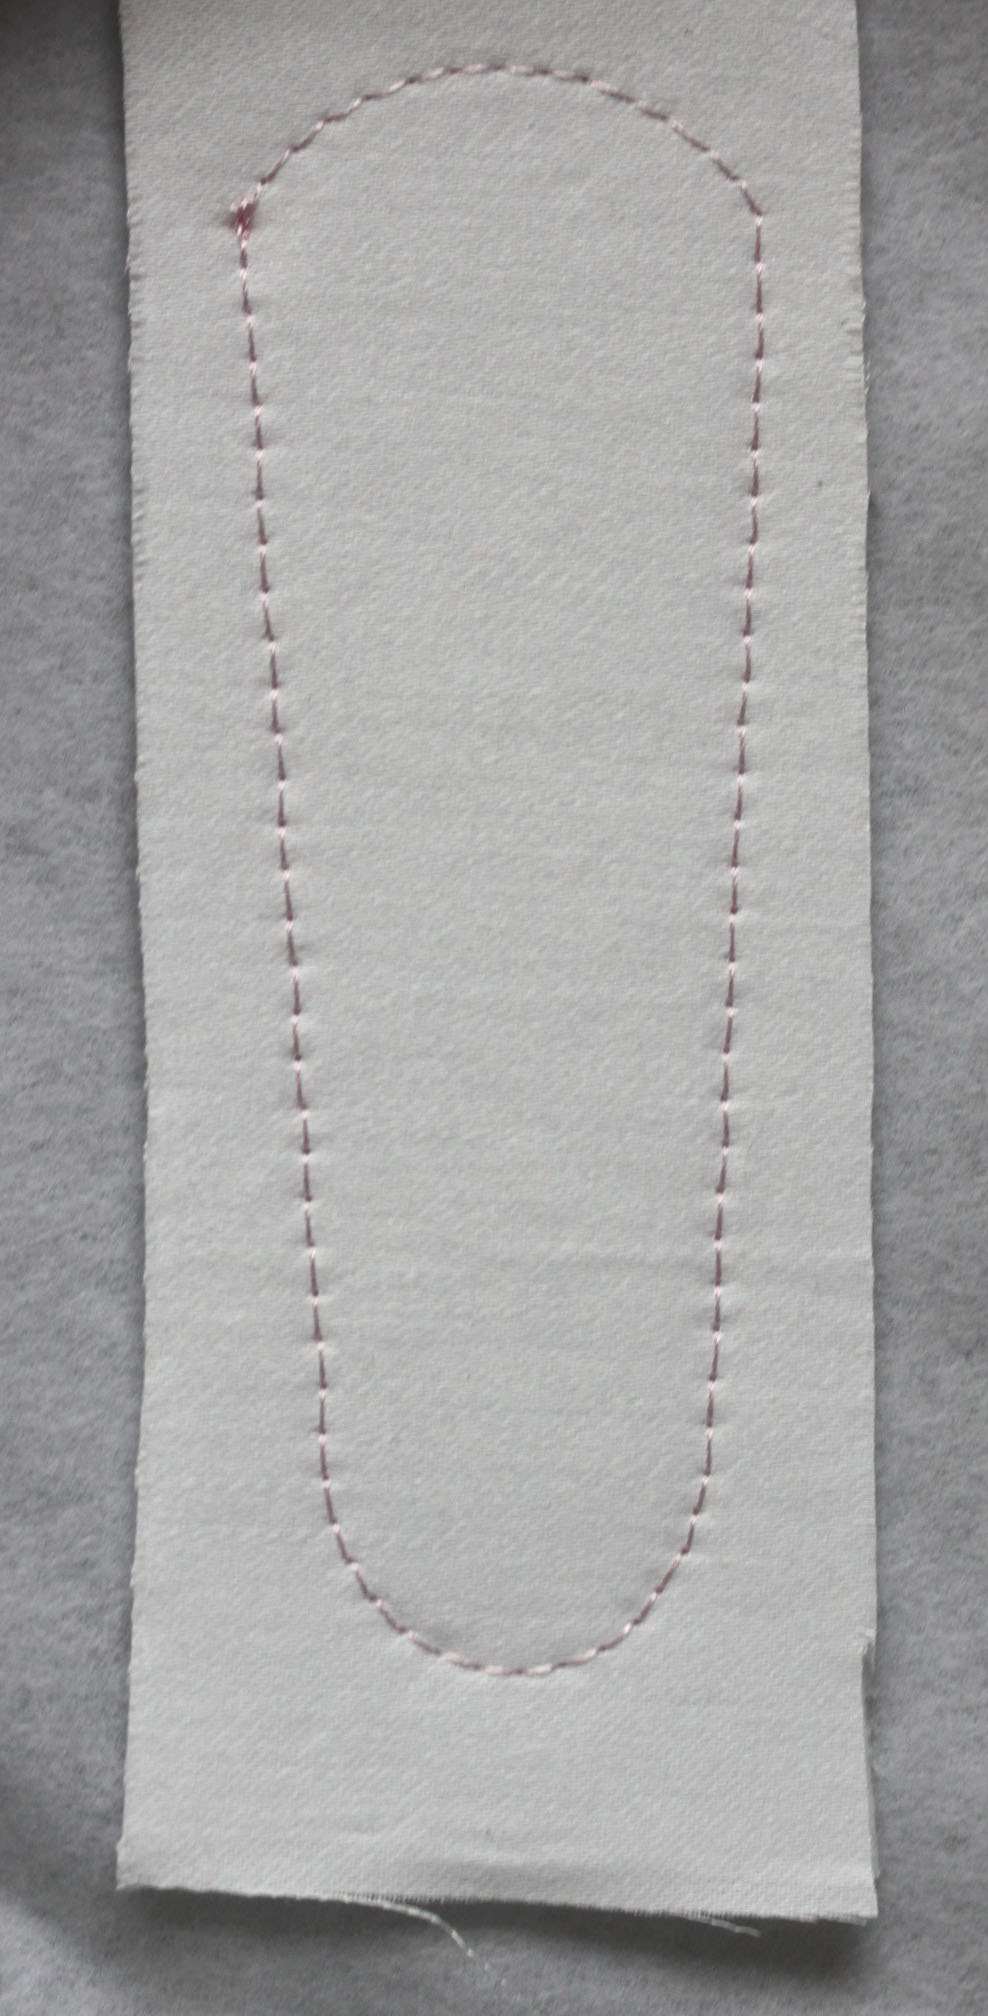 Fabric with Outline Stitch